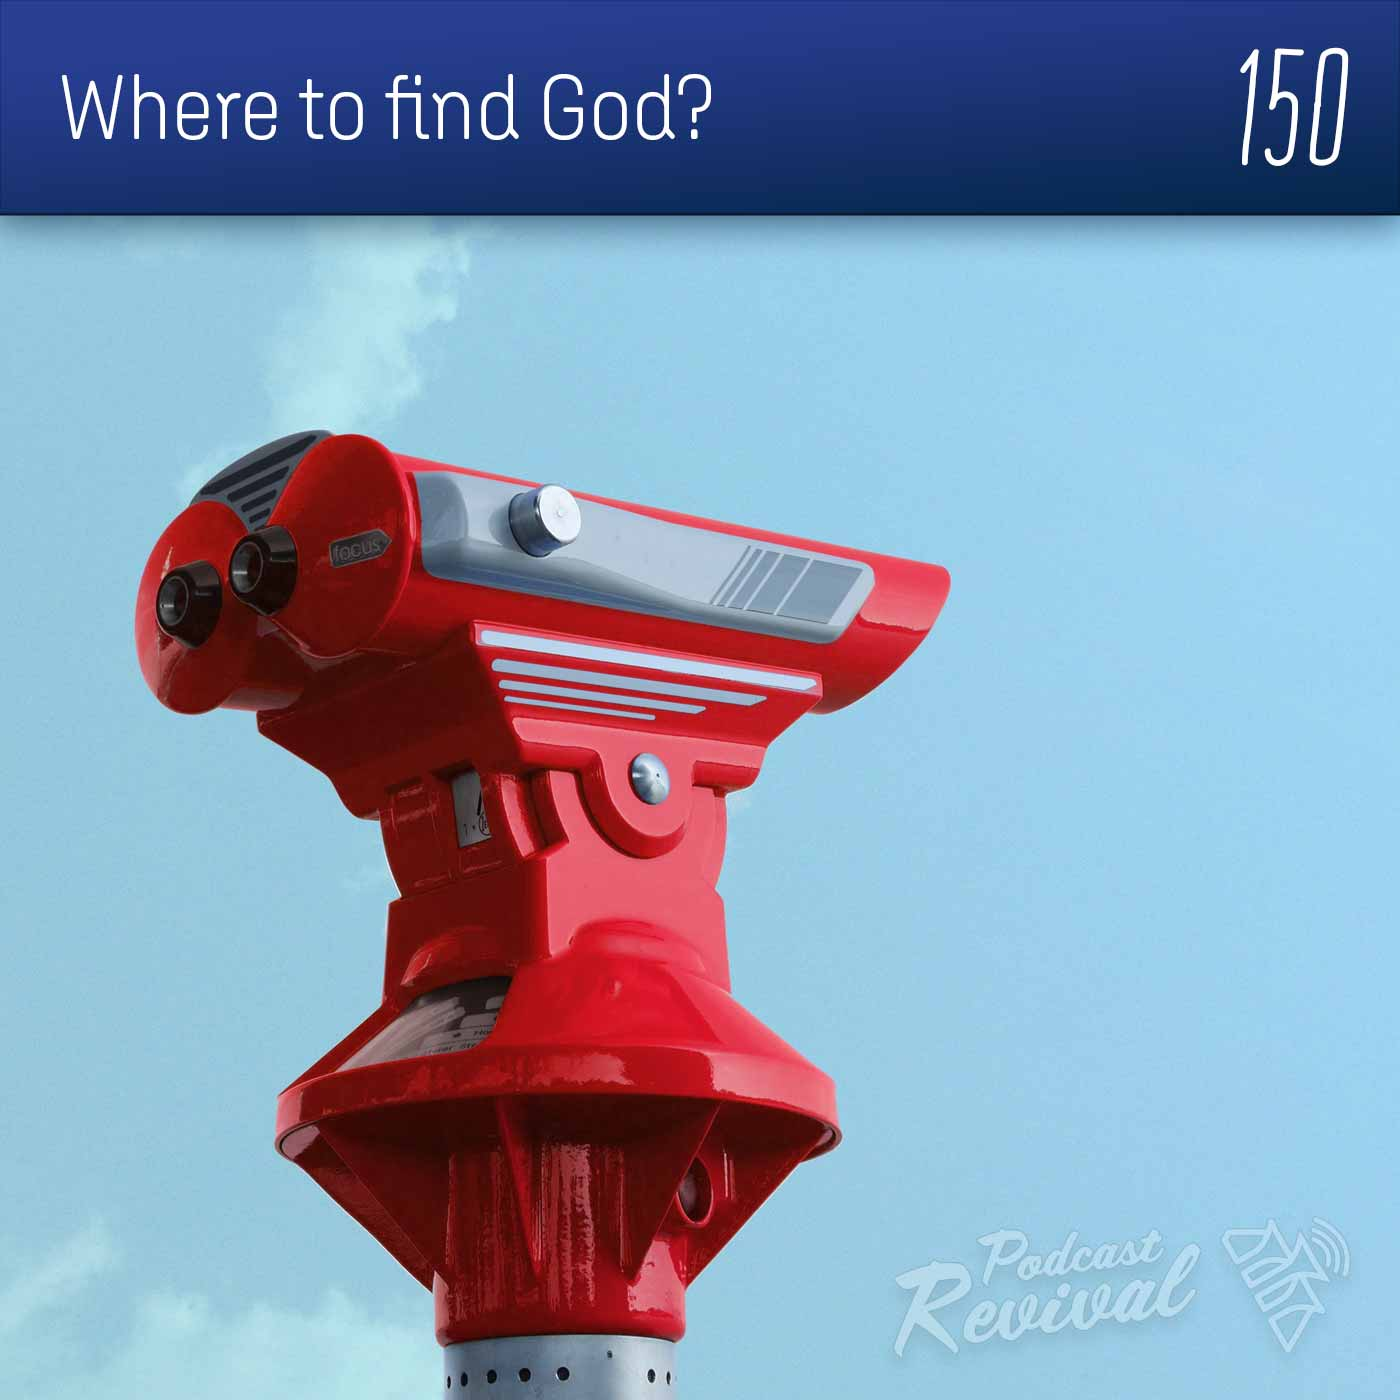 Where to find God?